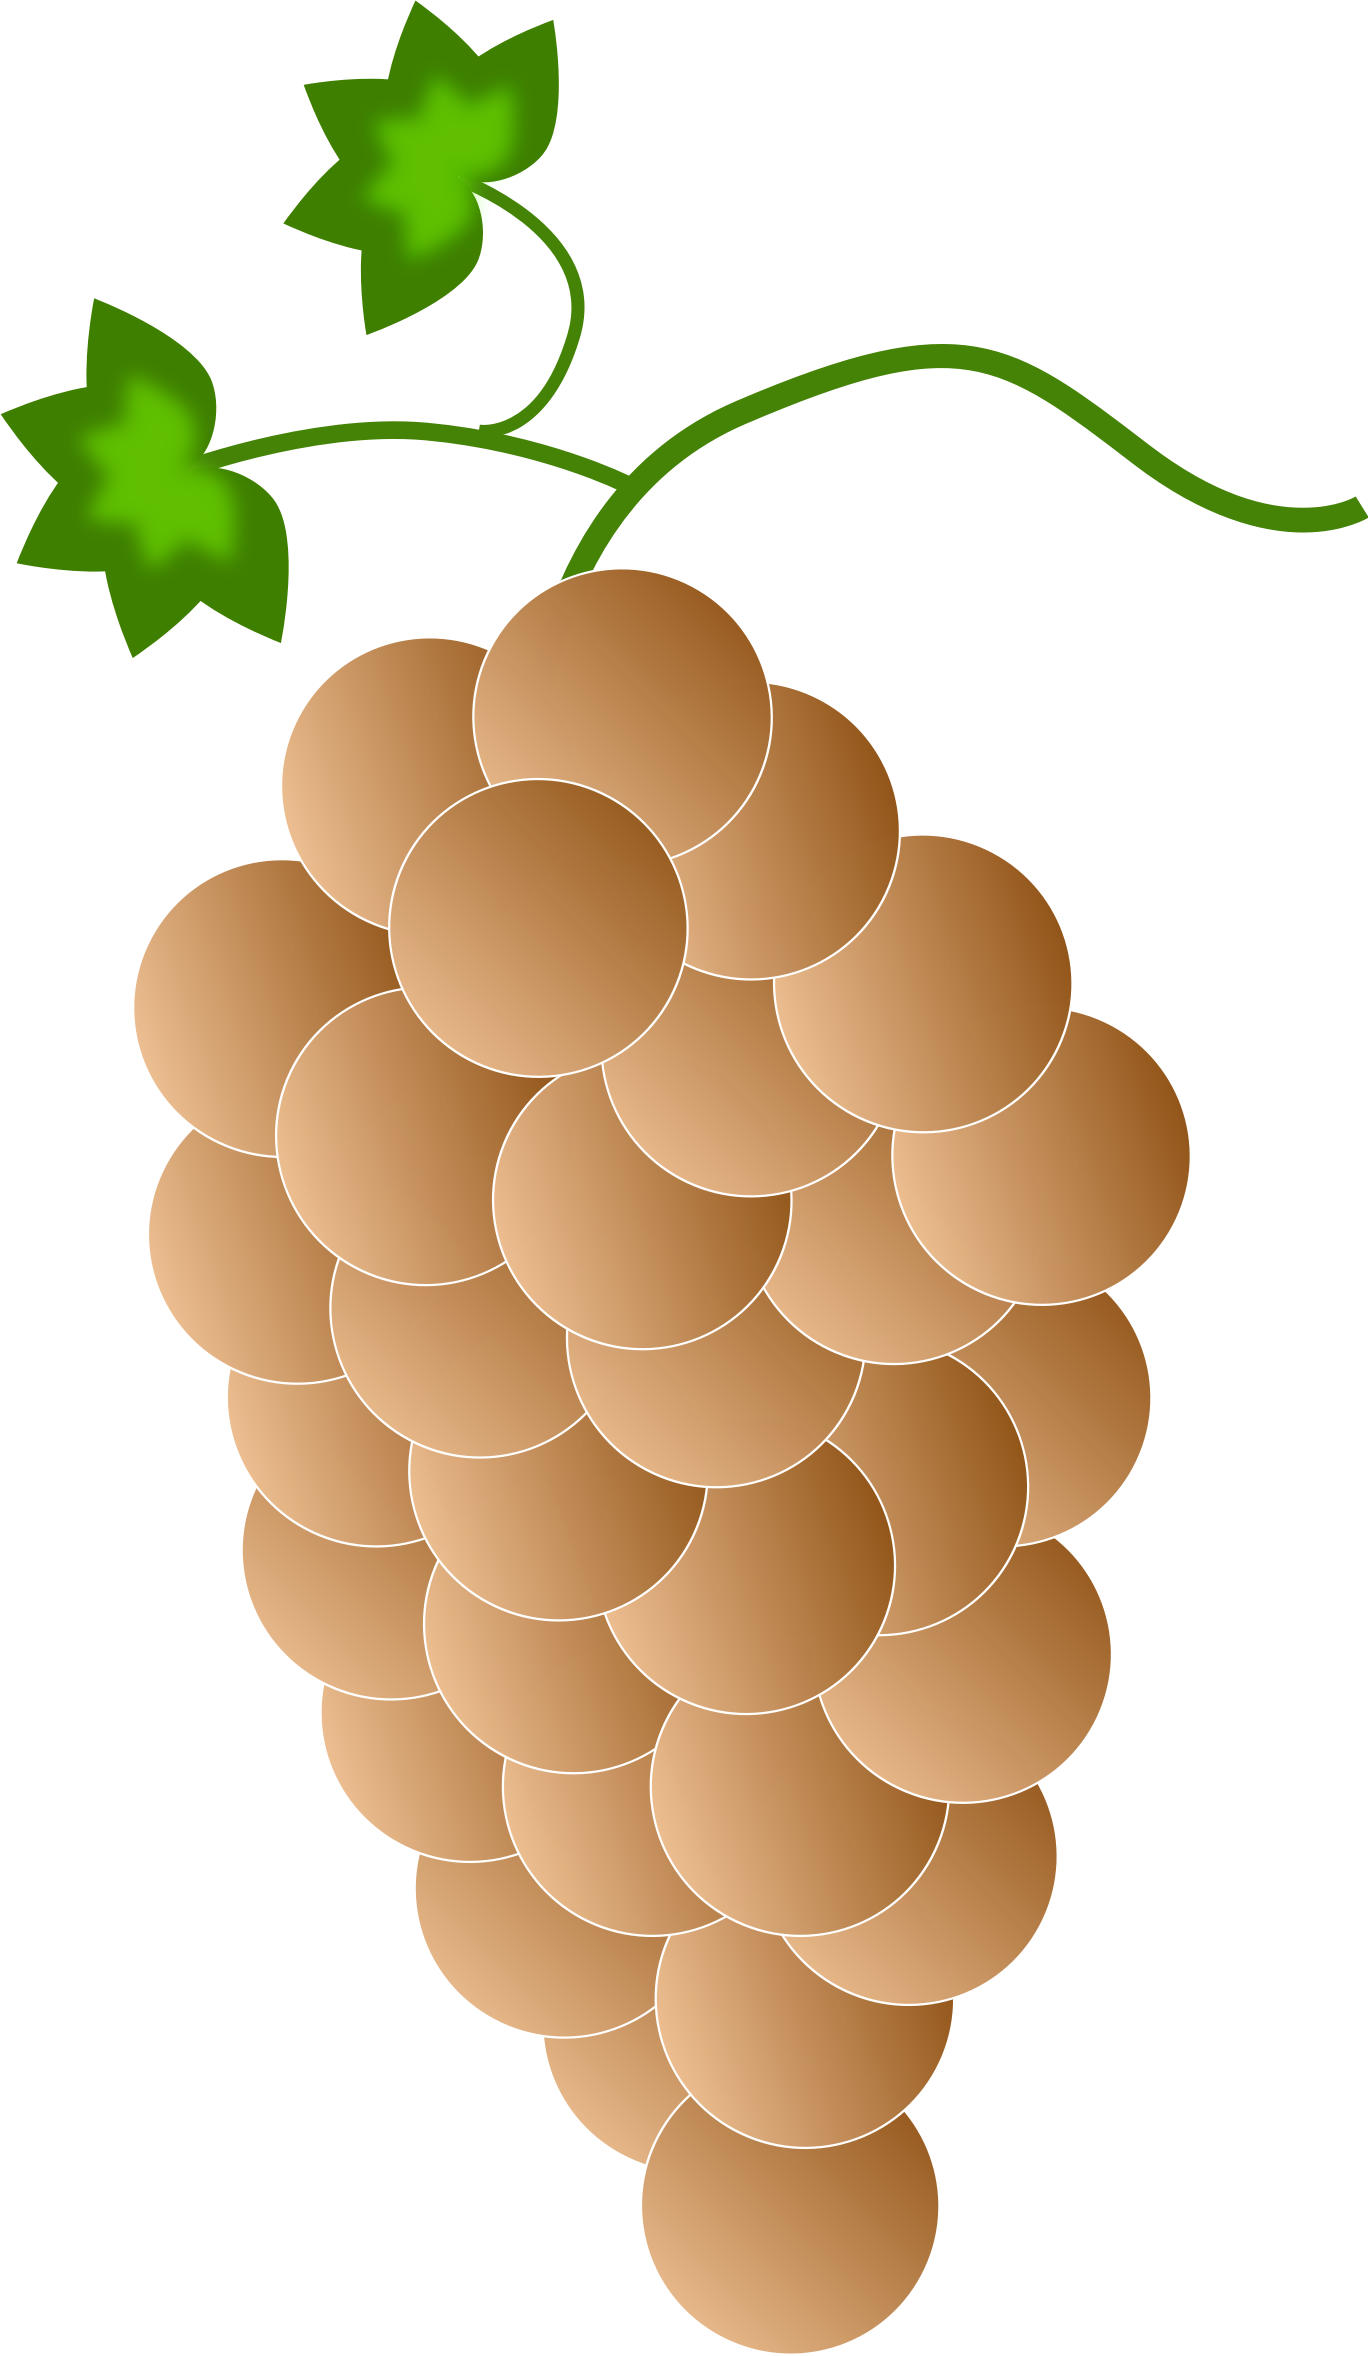 vector royalty free Big image png. Grapes clipart orange